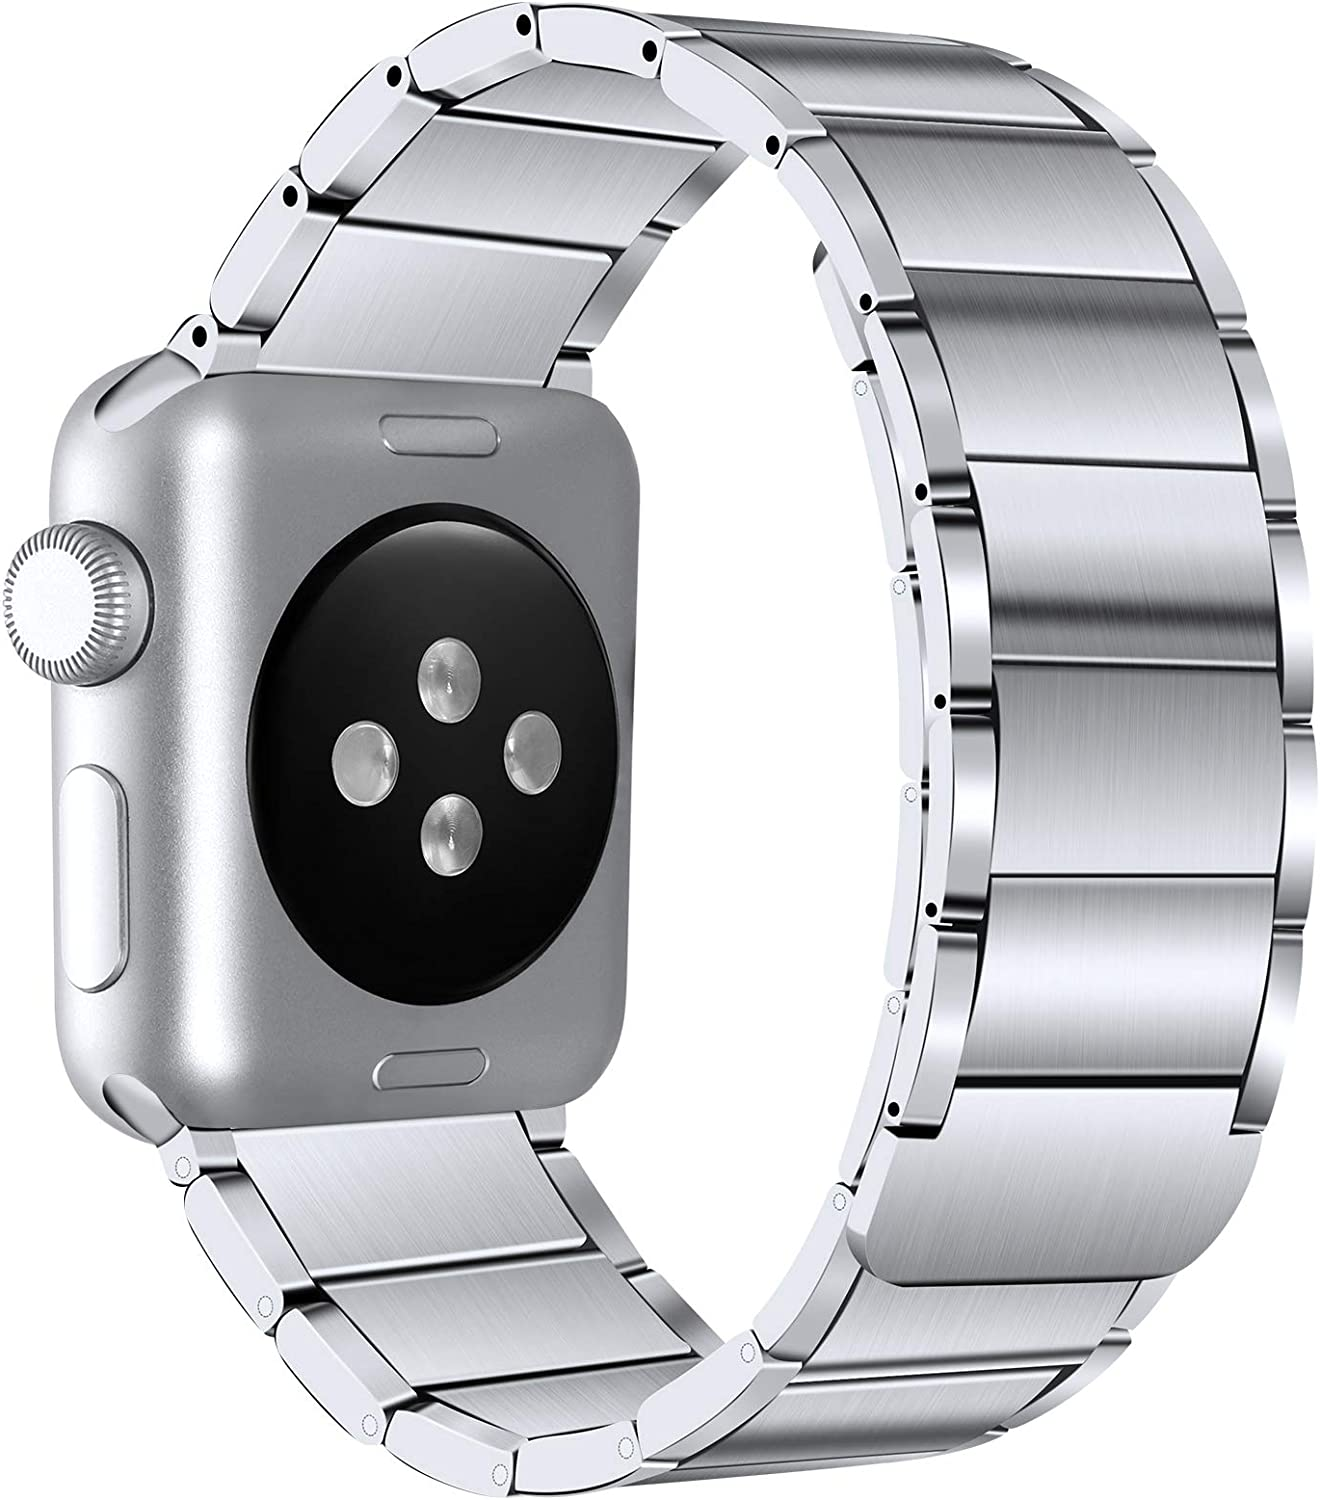 LEOMARON Armor Series Band Compatible with Apple Watch 40mm 44mm 38mm 42mm, Heavy Duty Stainless Steel Magnetic Wristband for iWatch Series 6/SE 5 4 3 2 1 Silver